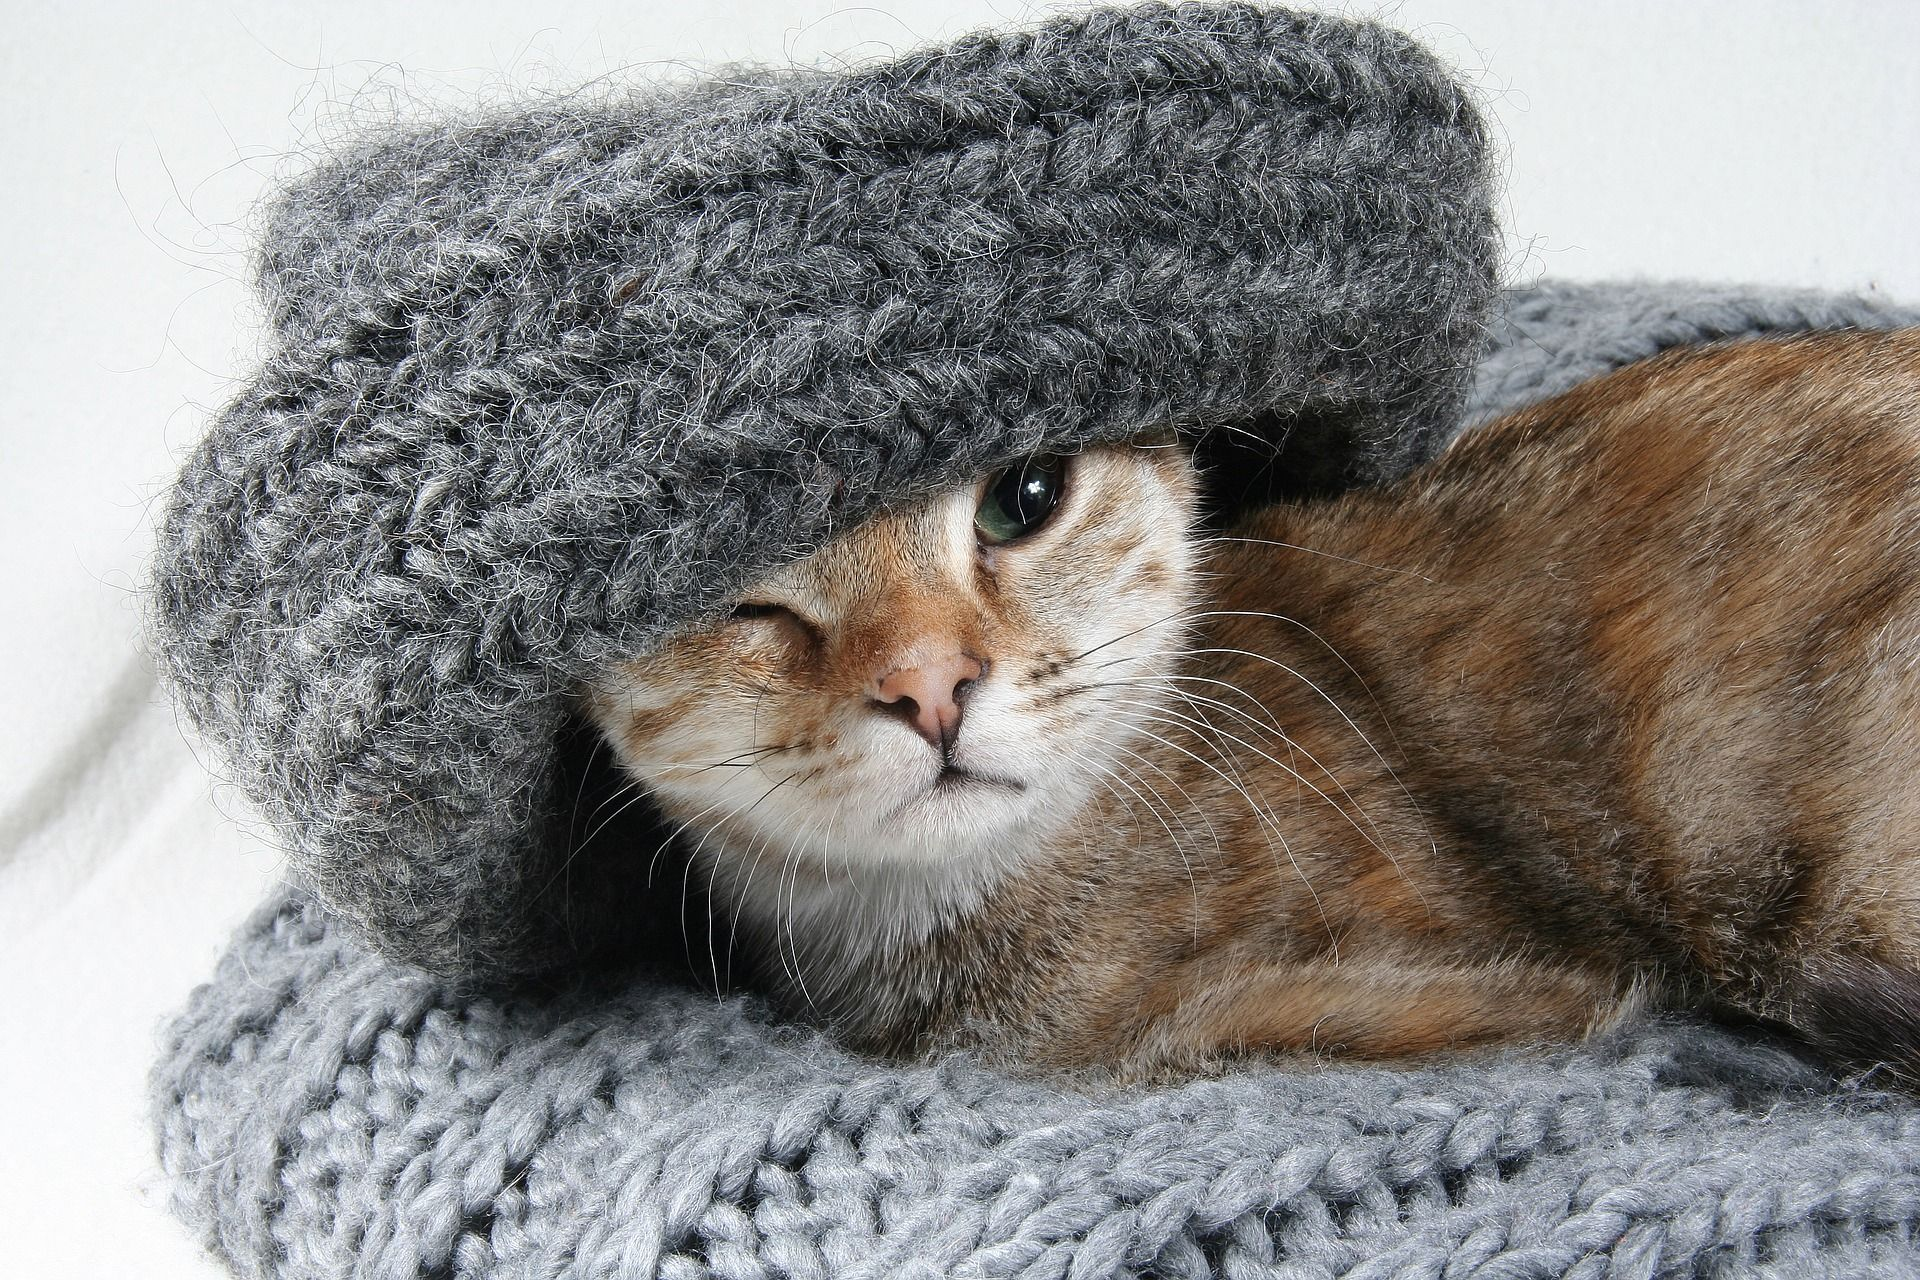 Reasons For Hair Loss In Cats Cats Health In 2020 Cat Proofing Cats Cute Cat Breeds